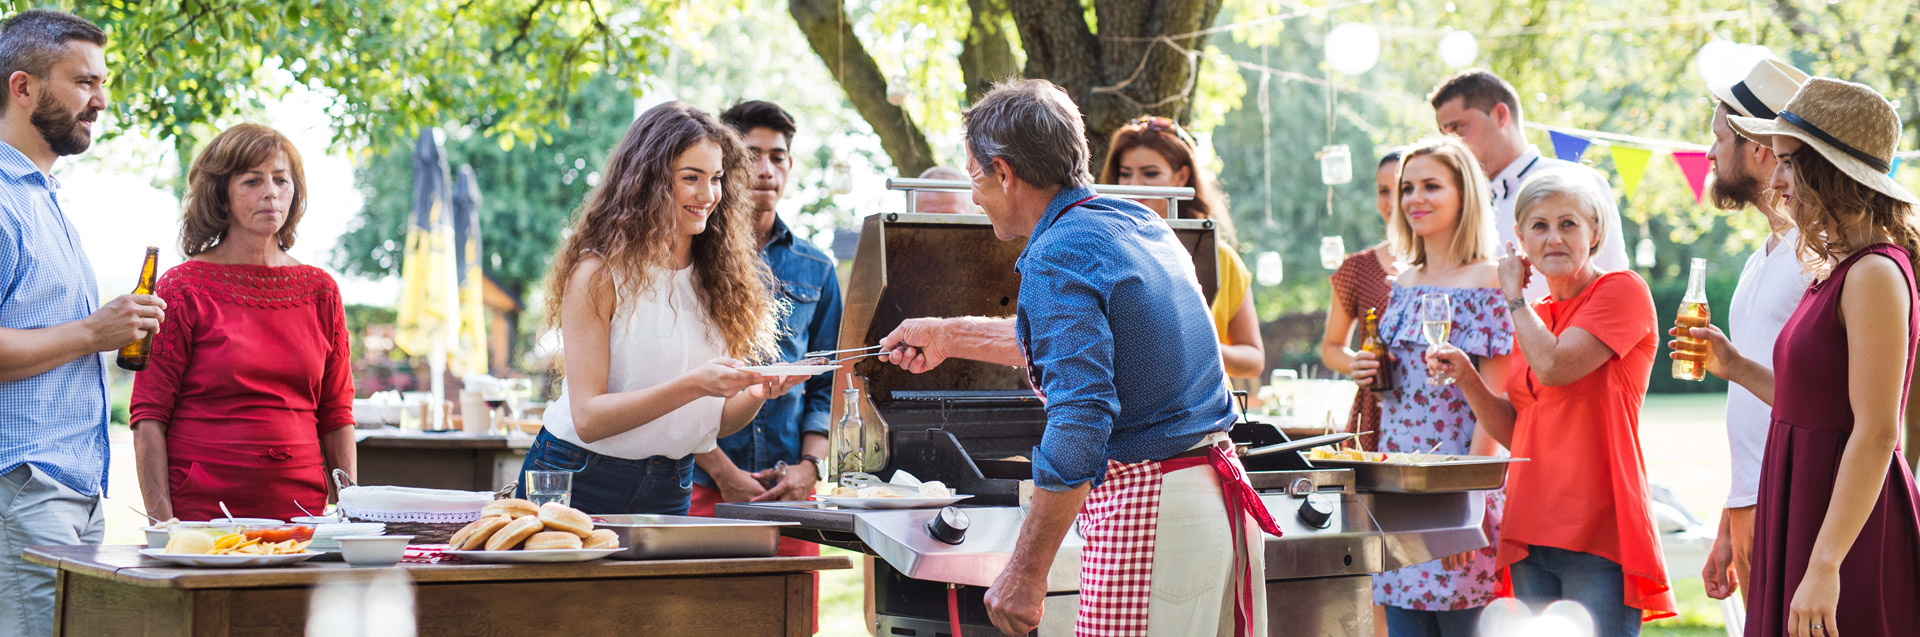 Photo of outdoor gathering, cookout